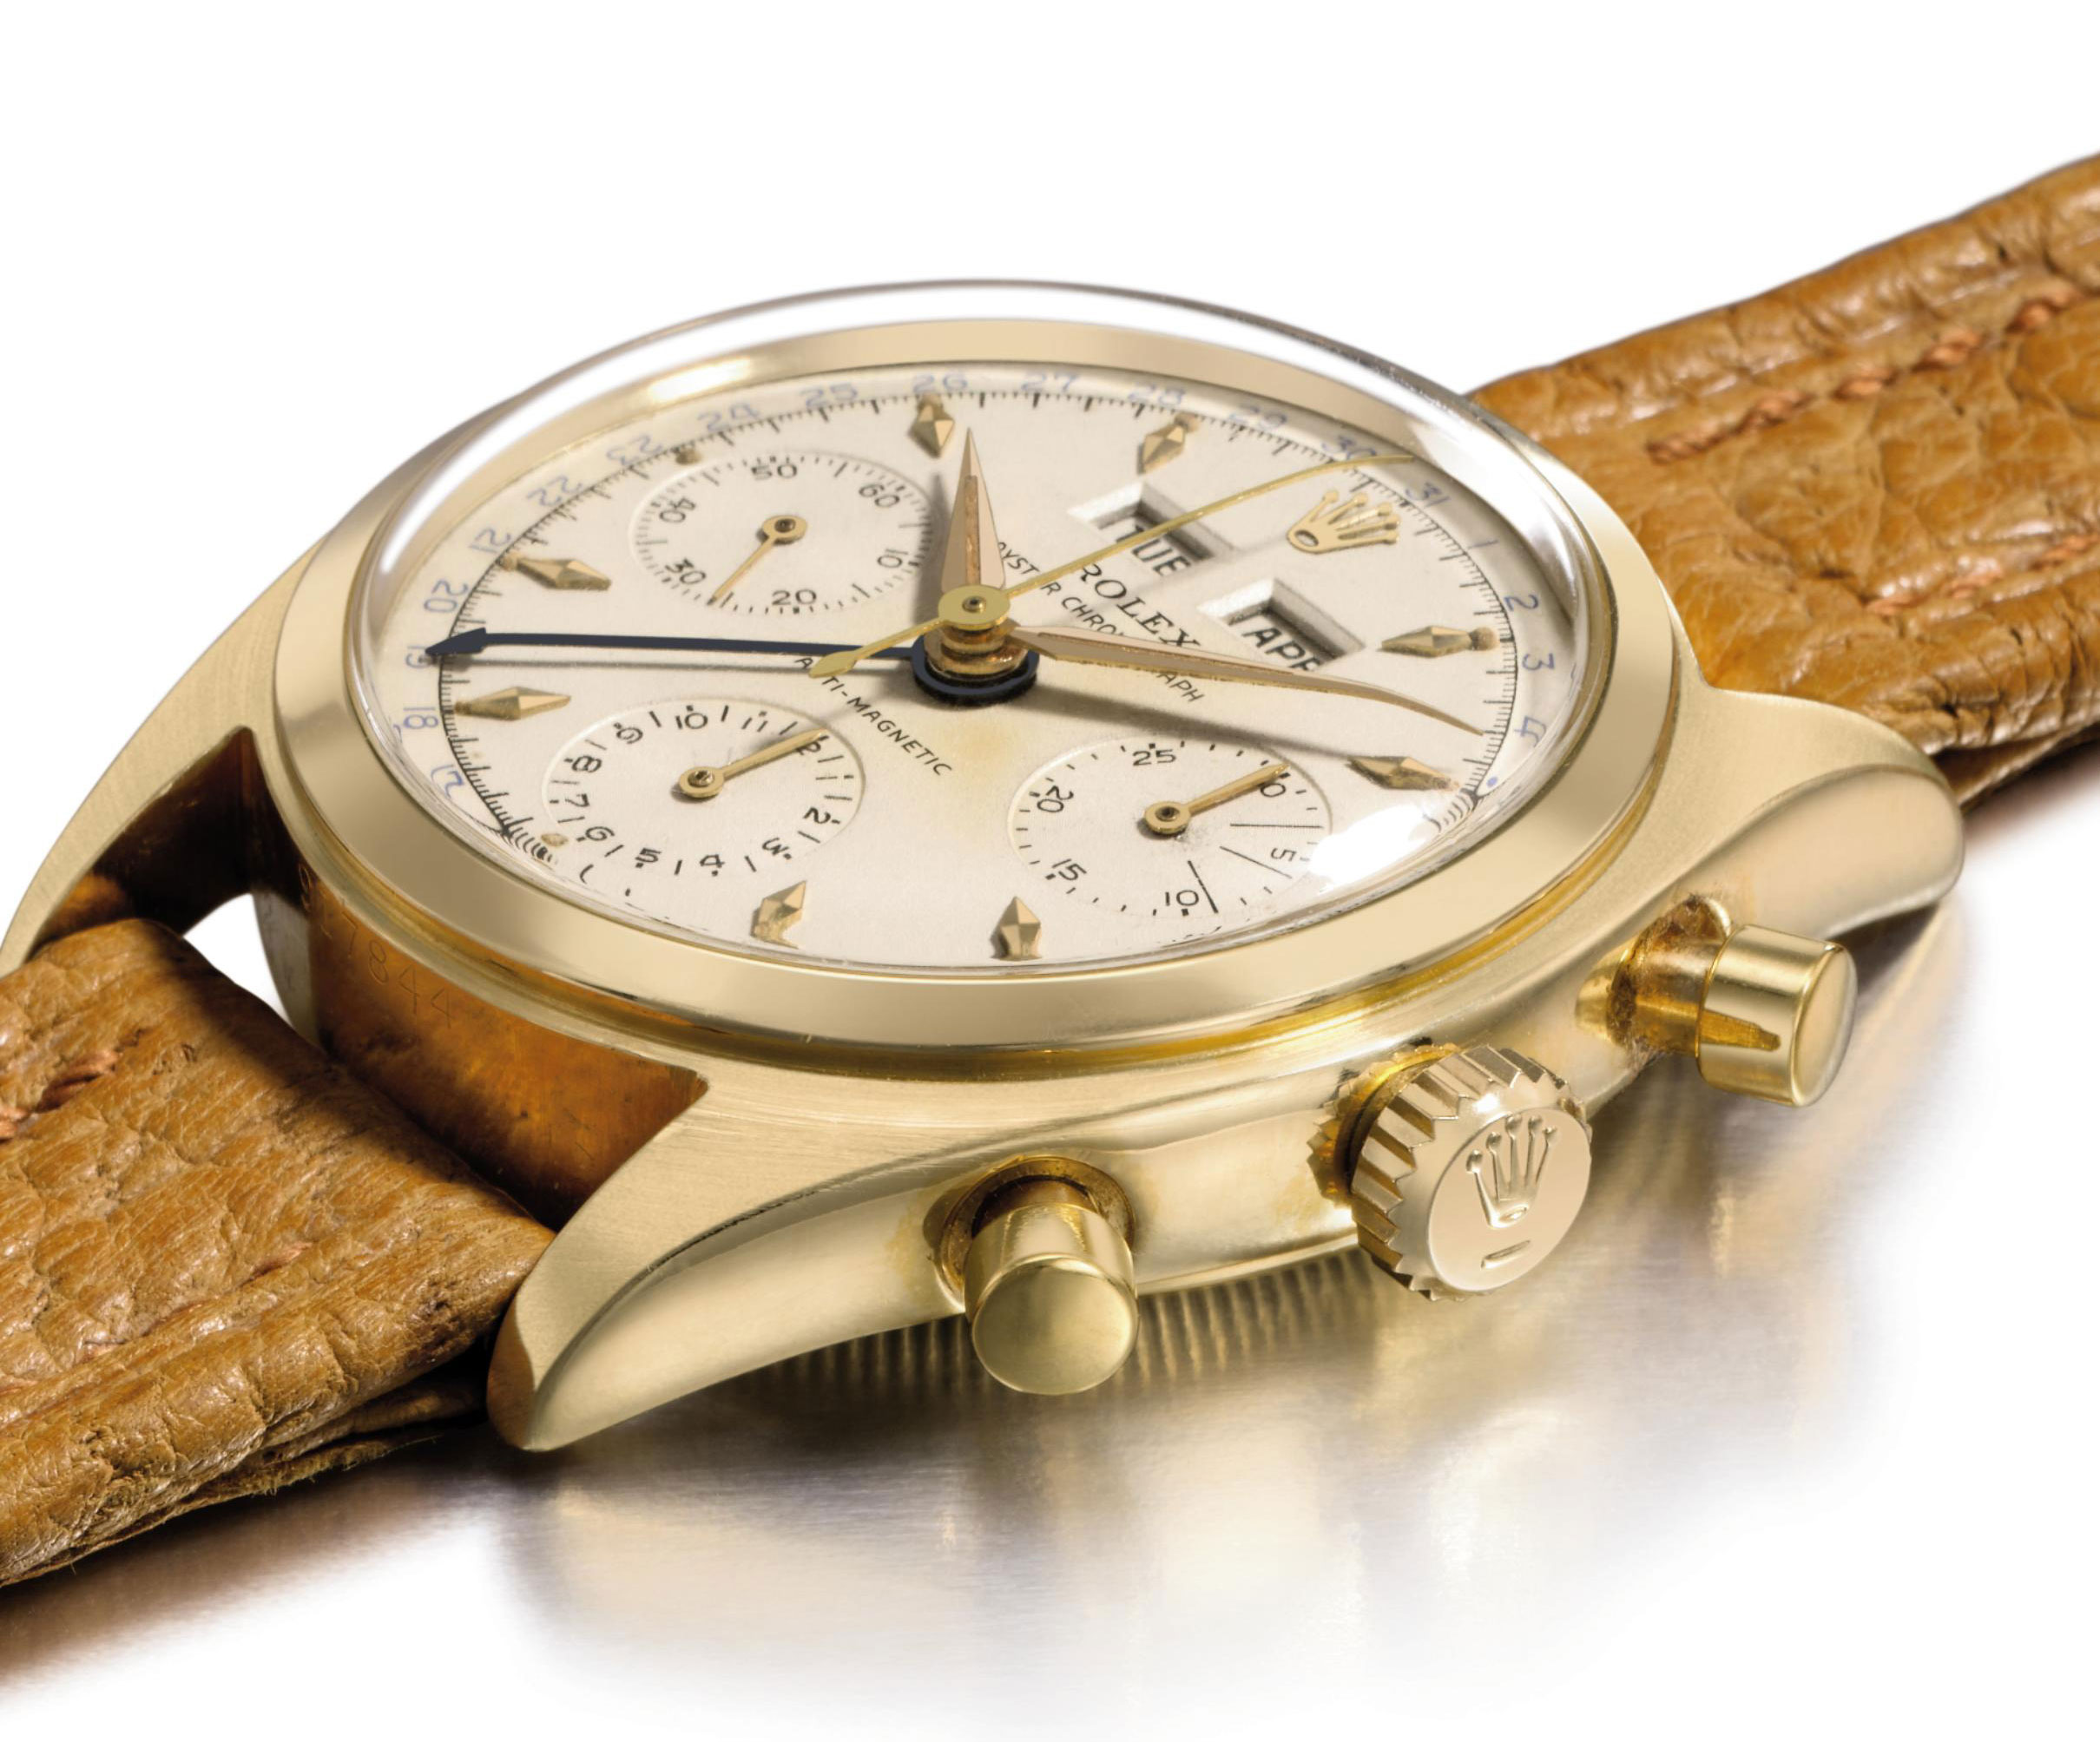 Rolex. A very fine and extreme